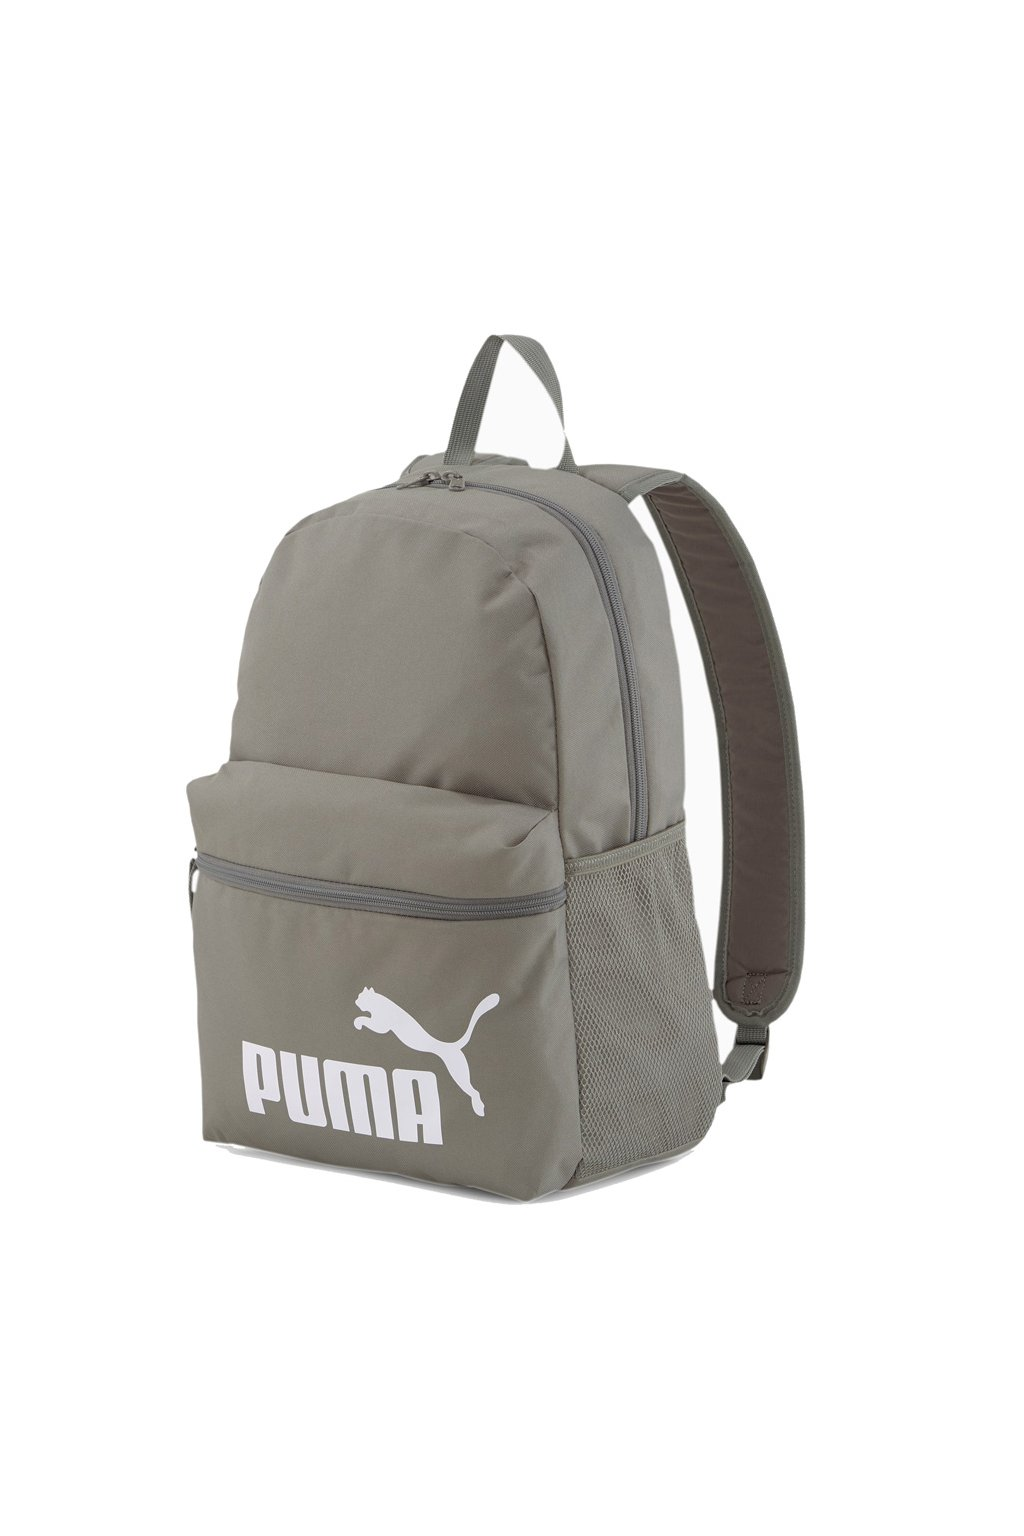 Batoh Puma Phase Backpack šedý 075487 45